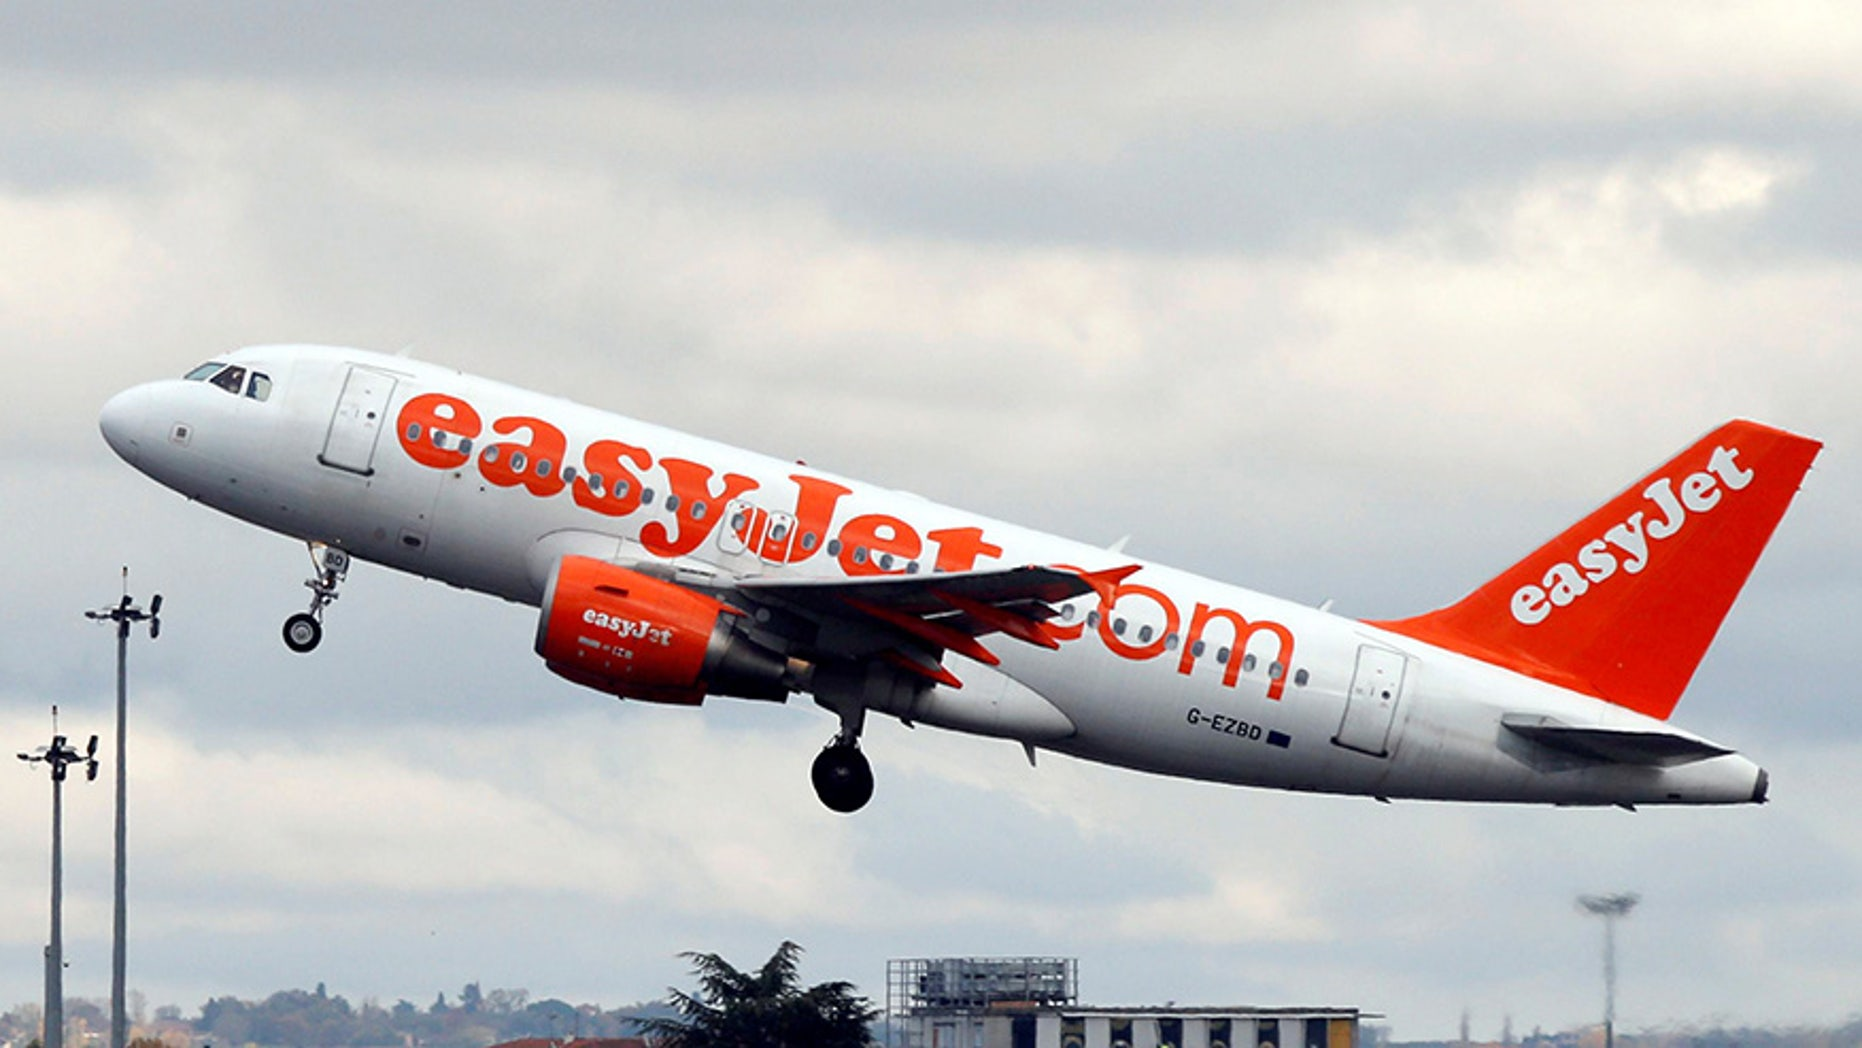 A 7-year-old girl reportedly slipped onto an EasyJet flight in Geneva without a ticket.